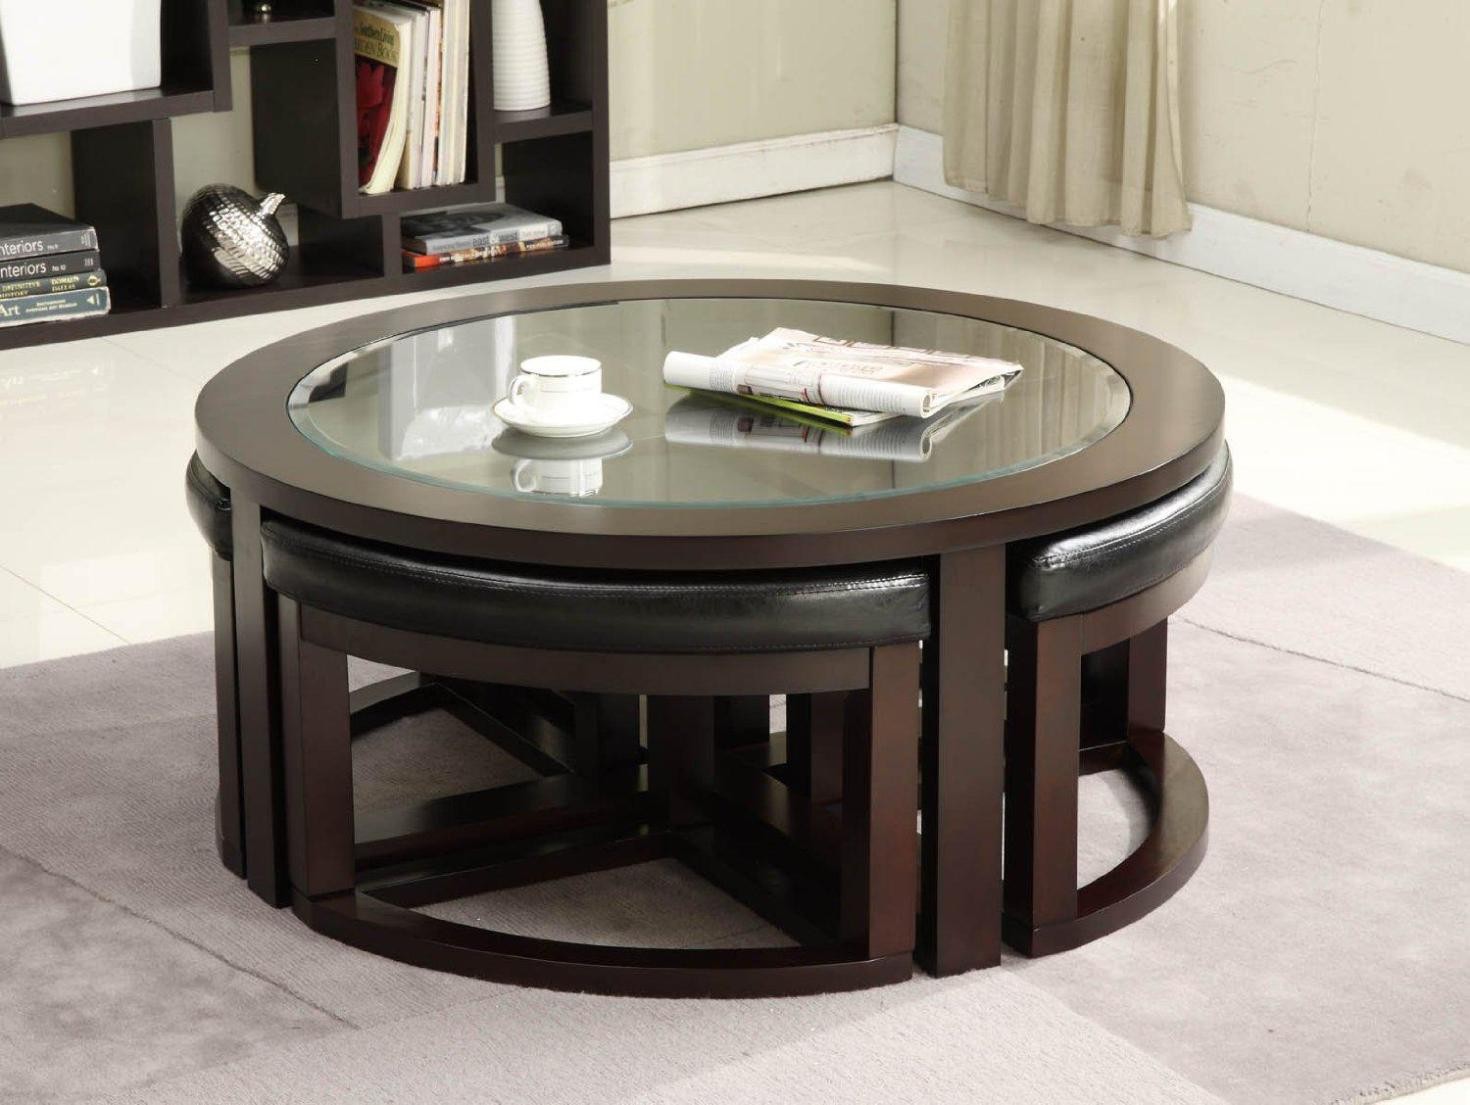 Round Coffee Table With Stools Round Coffee Table With Ottomans Underneath Coffee Table With Seating Underneath Furniture (Image 8 of 10)